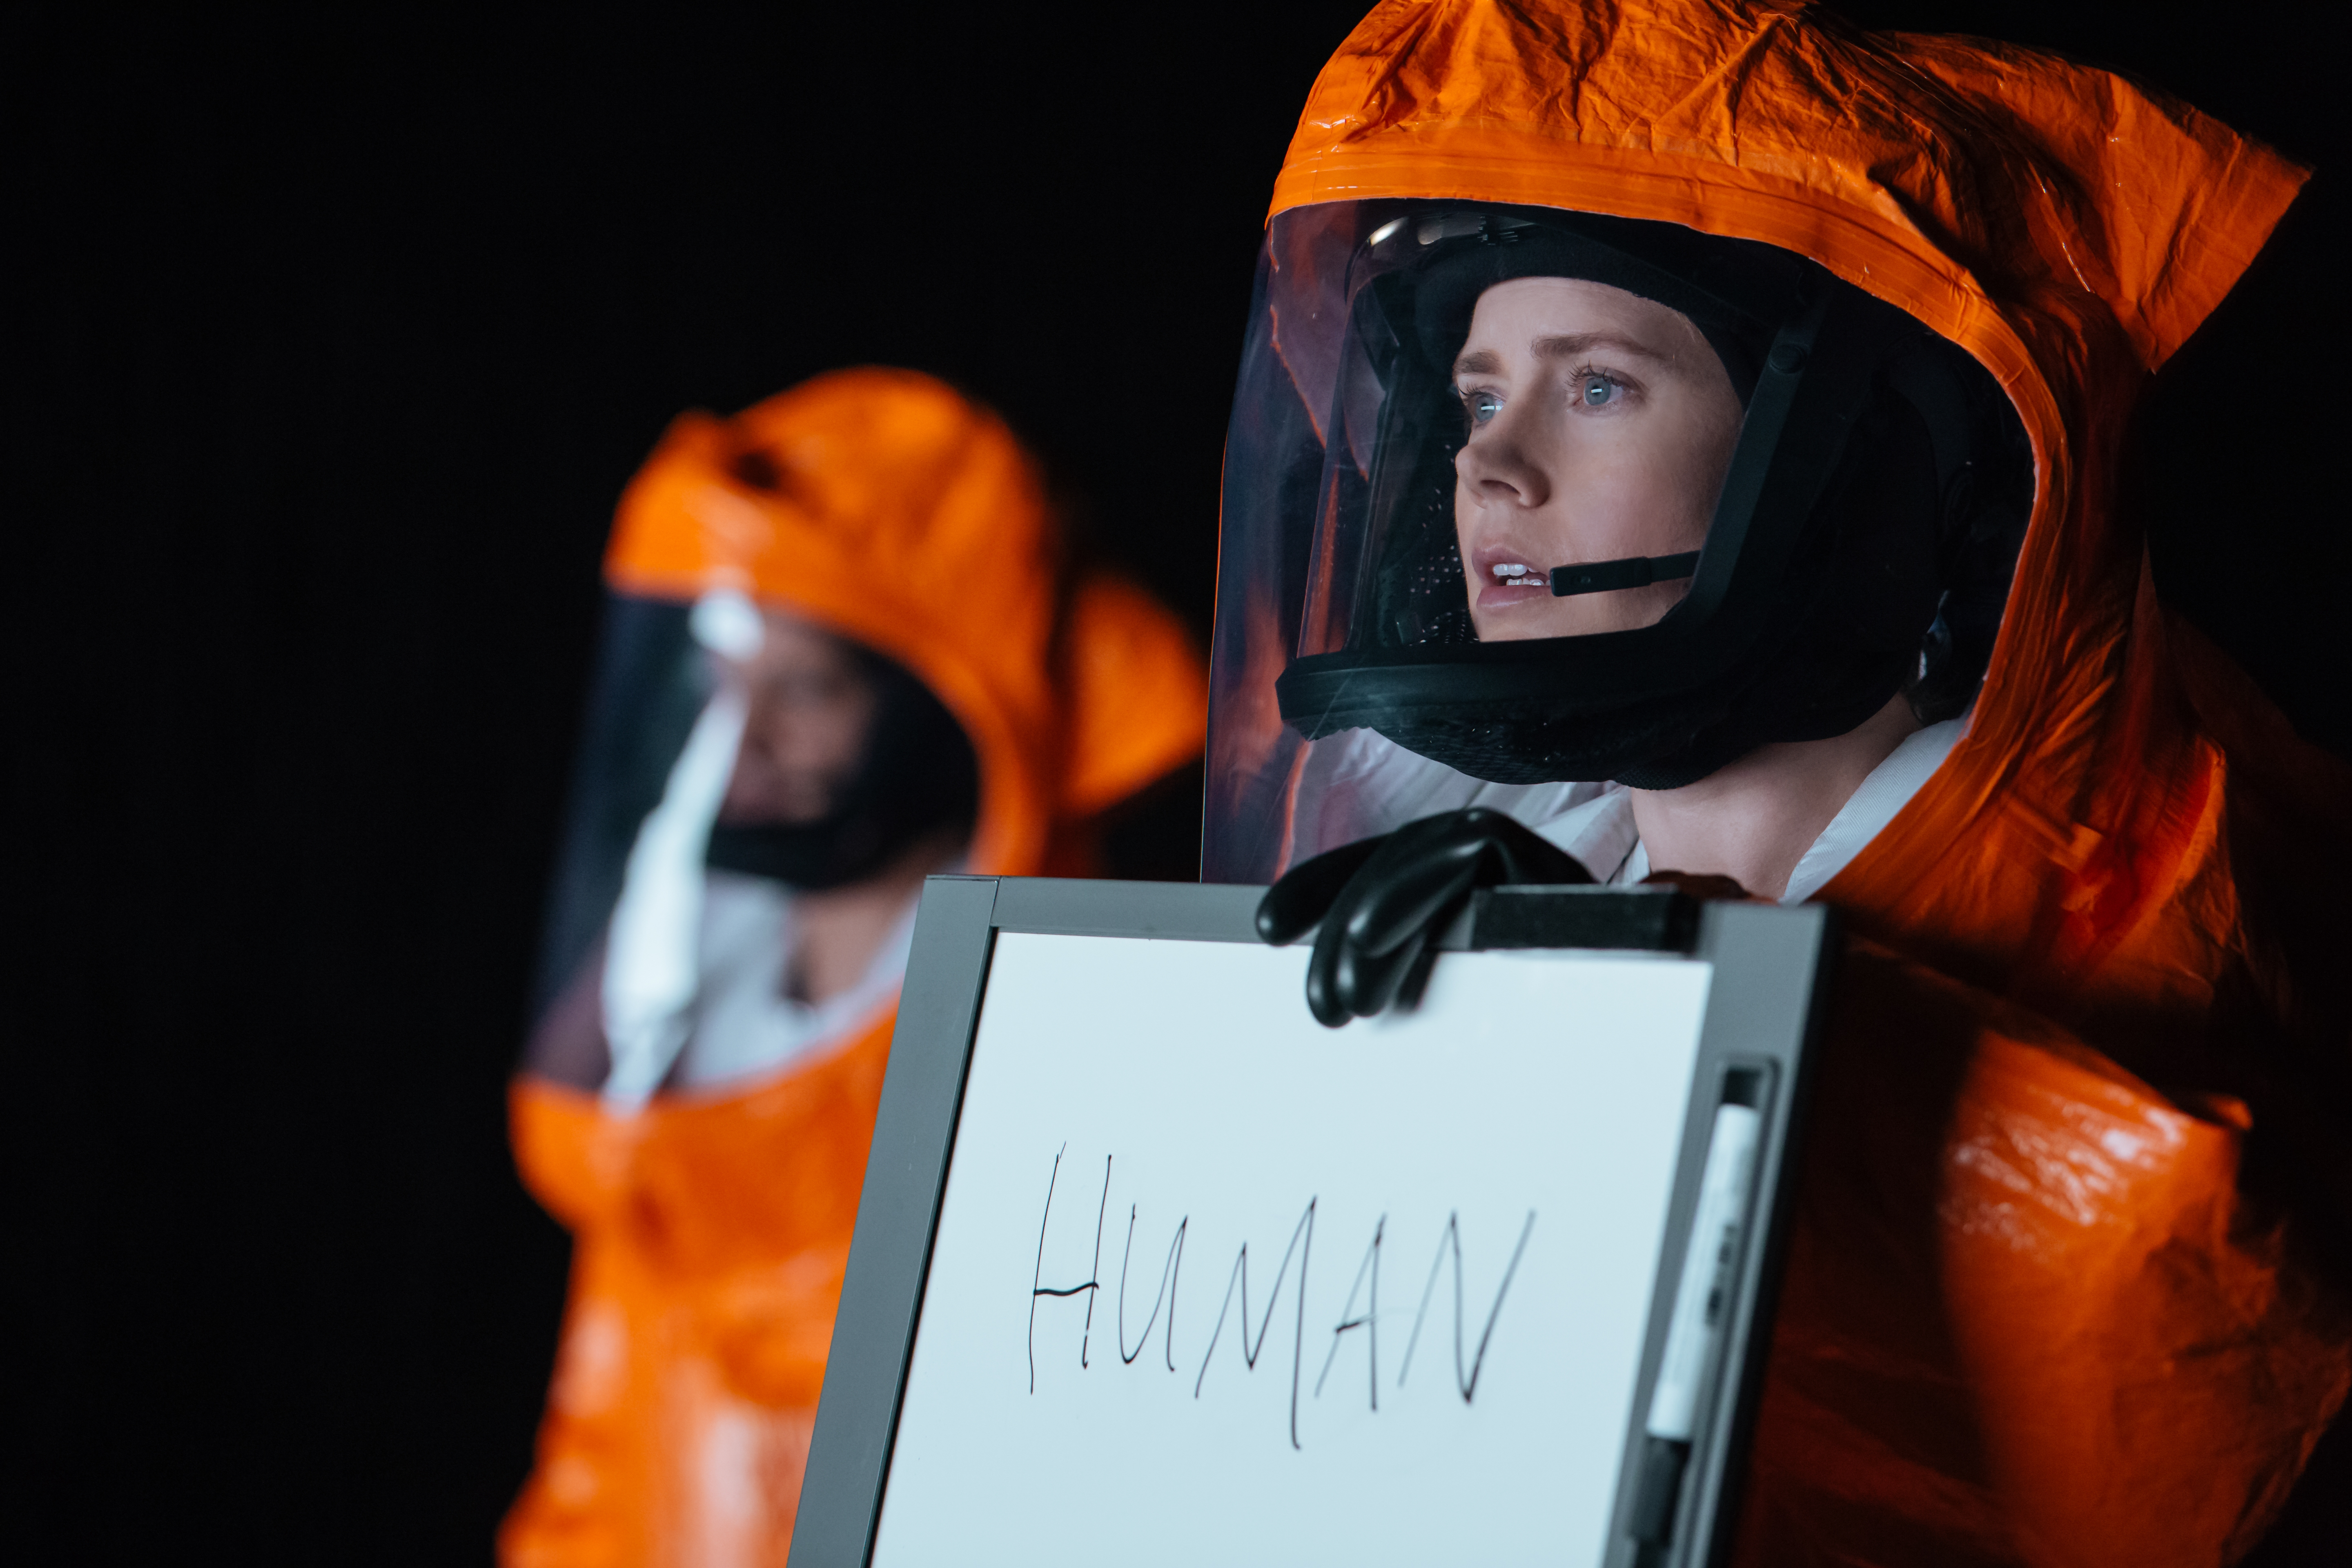 COMING TO THE CHARLES: 'Arrival' brings freshness to sci-fi genre